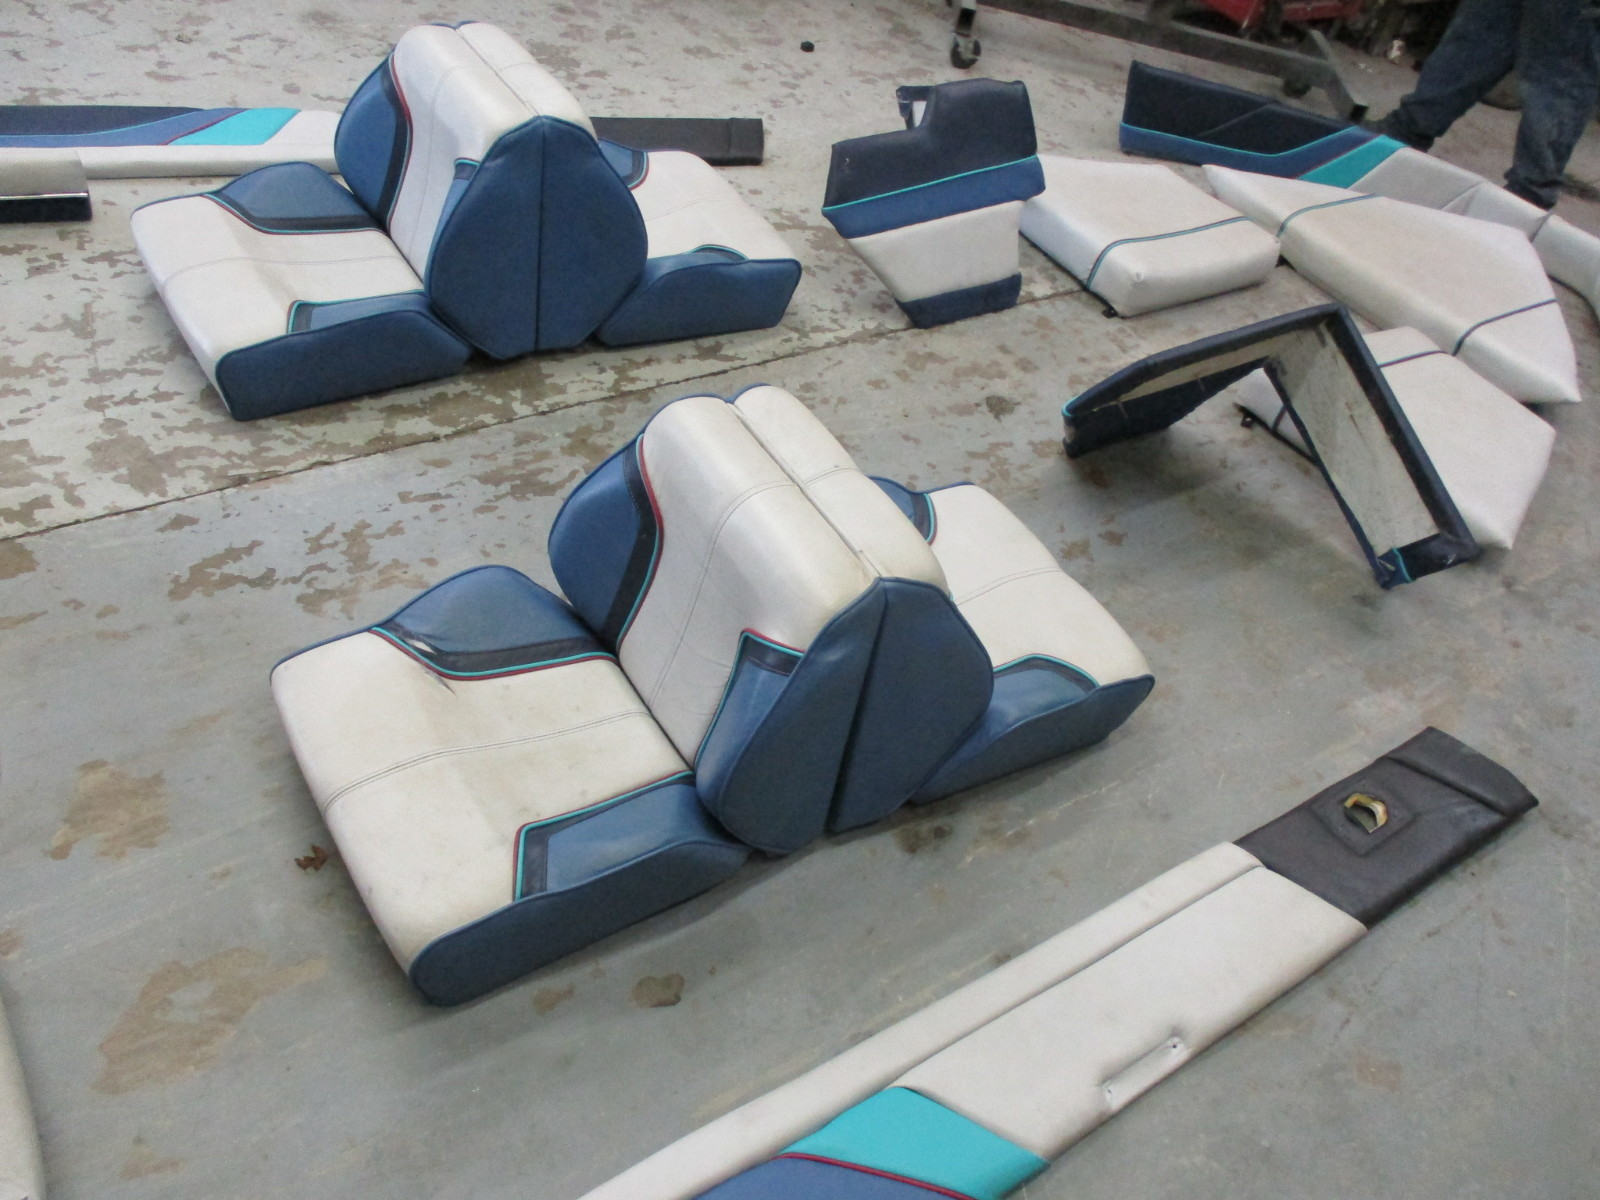 10615 1987 17 ft bayliner capri interior seats cushions back rest side wall 8 1989 bayliner capri seat covers velcromag 1992 bayliner capri wiring diagram at creativeand.co